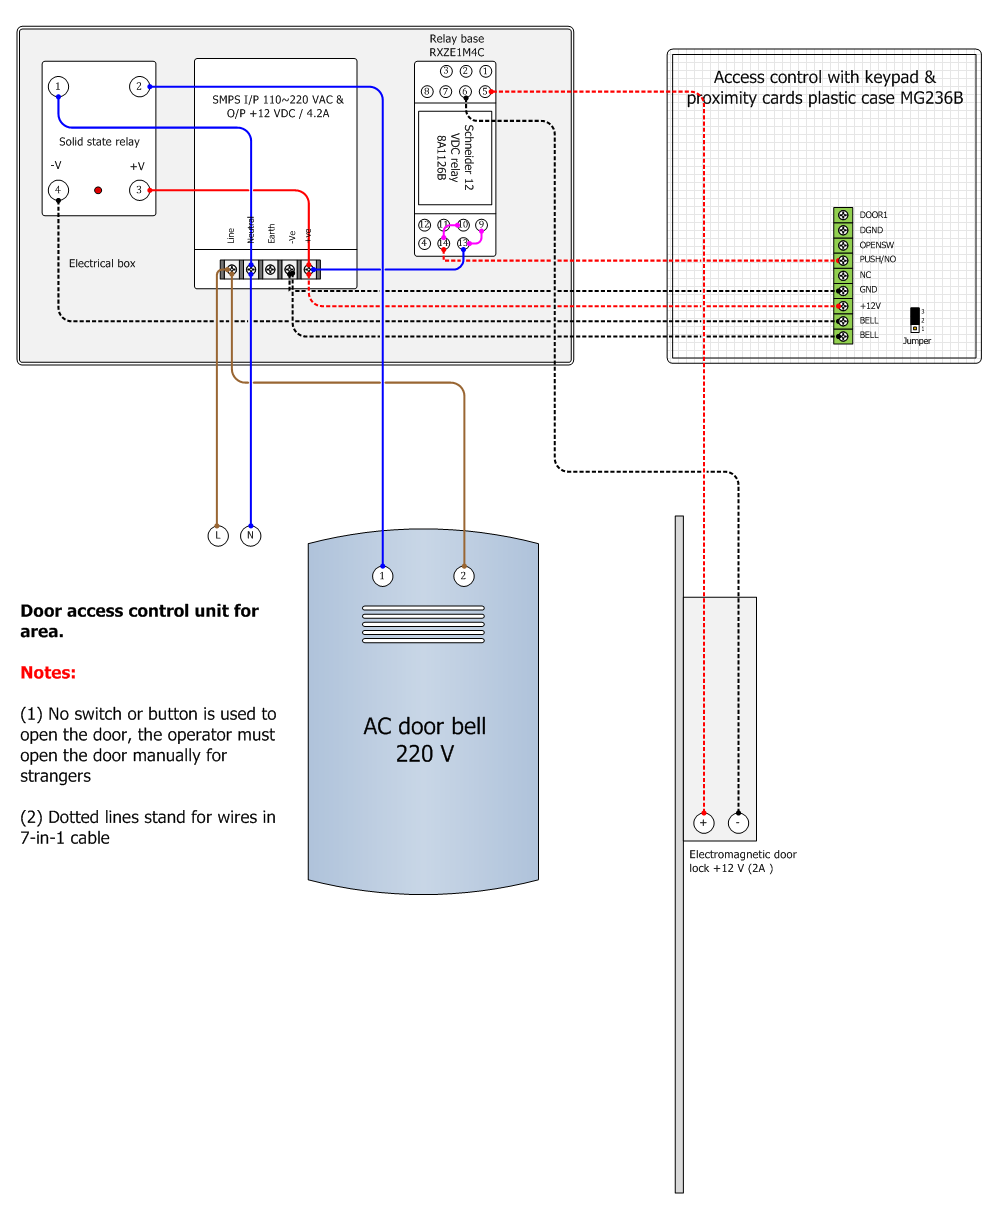 hight resolution of eng shady mohsen blog access control mg236b wiring diagramac door bell